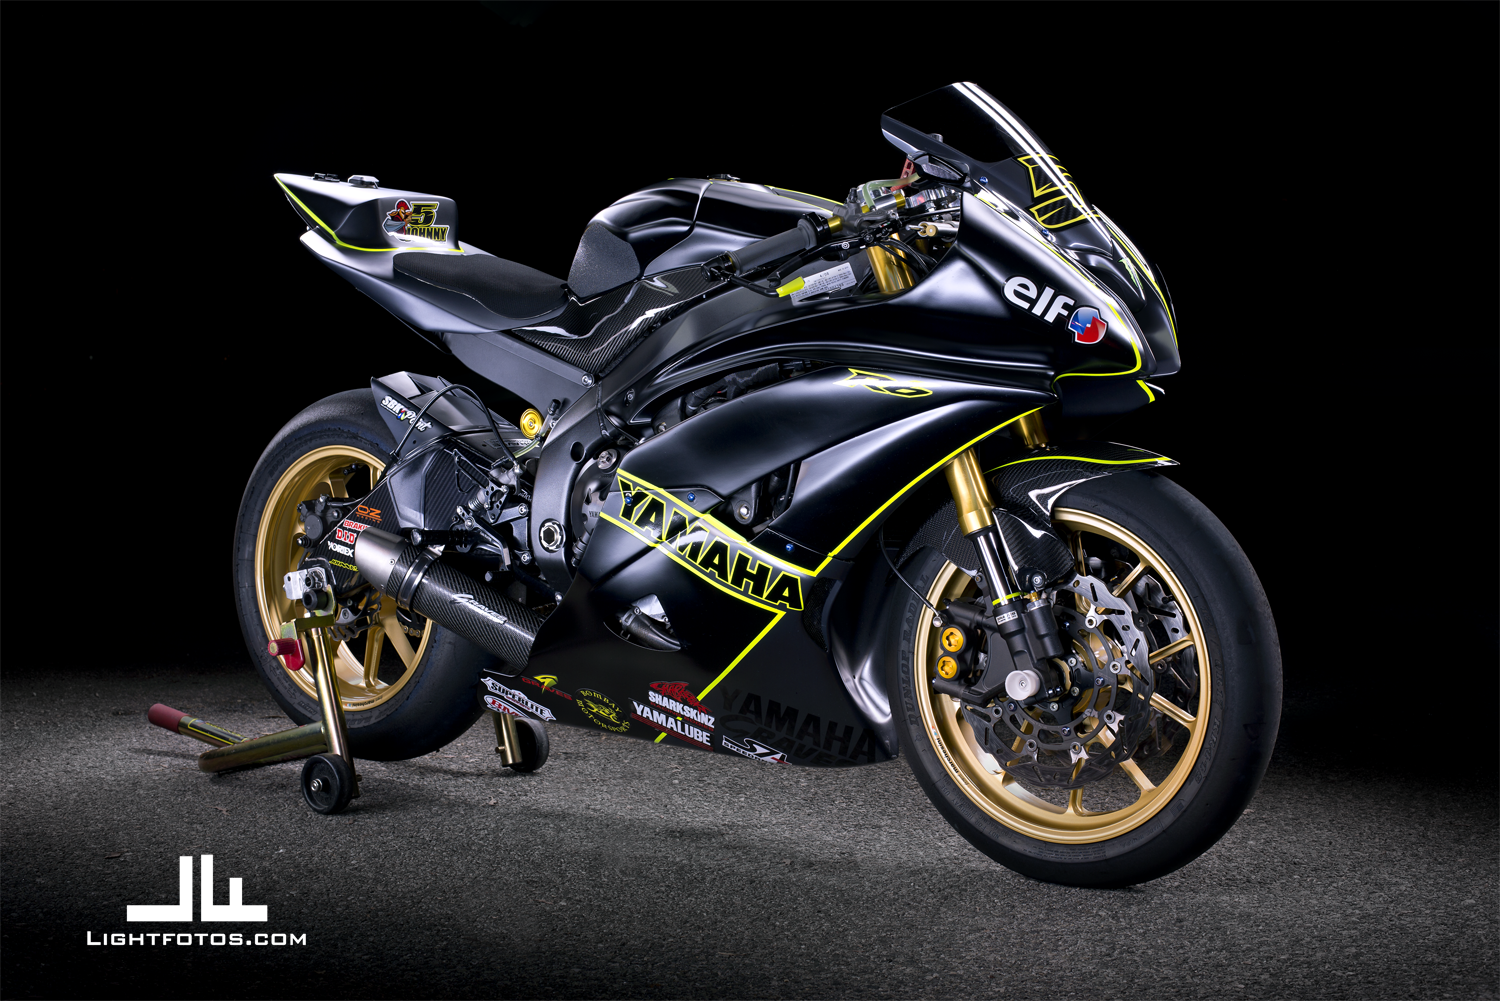 This Bike Looks Fantastic The Build Is Very Sano And Im Sure Performance Much More Than A Simple Sum Of Parts It